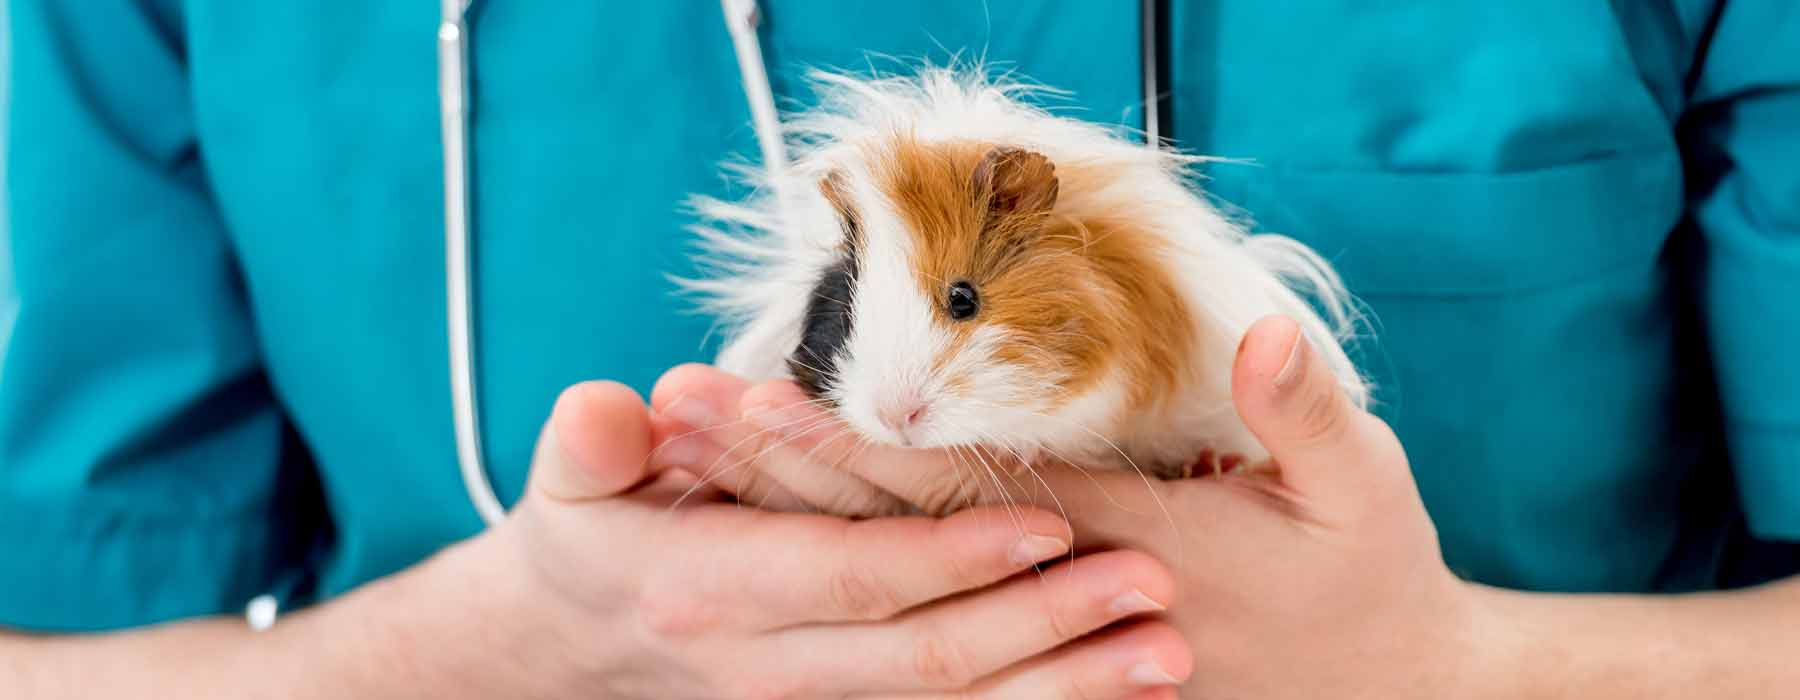 guinea pig being held by a veterinary expert